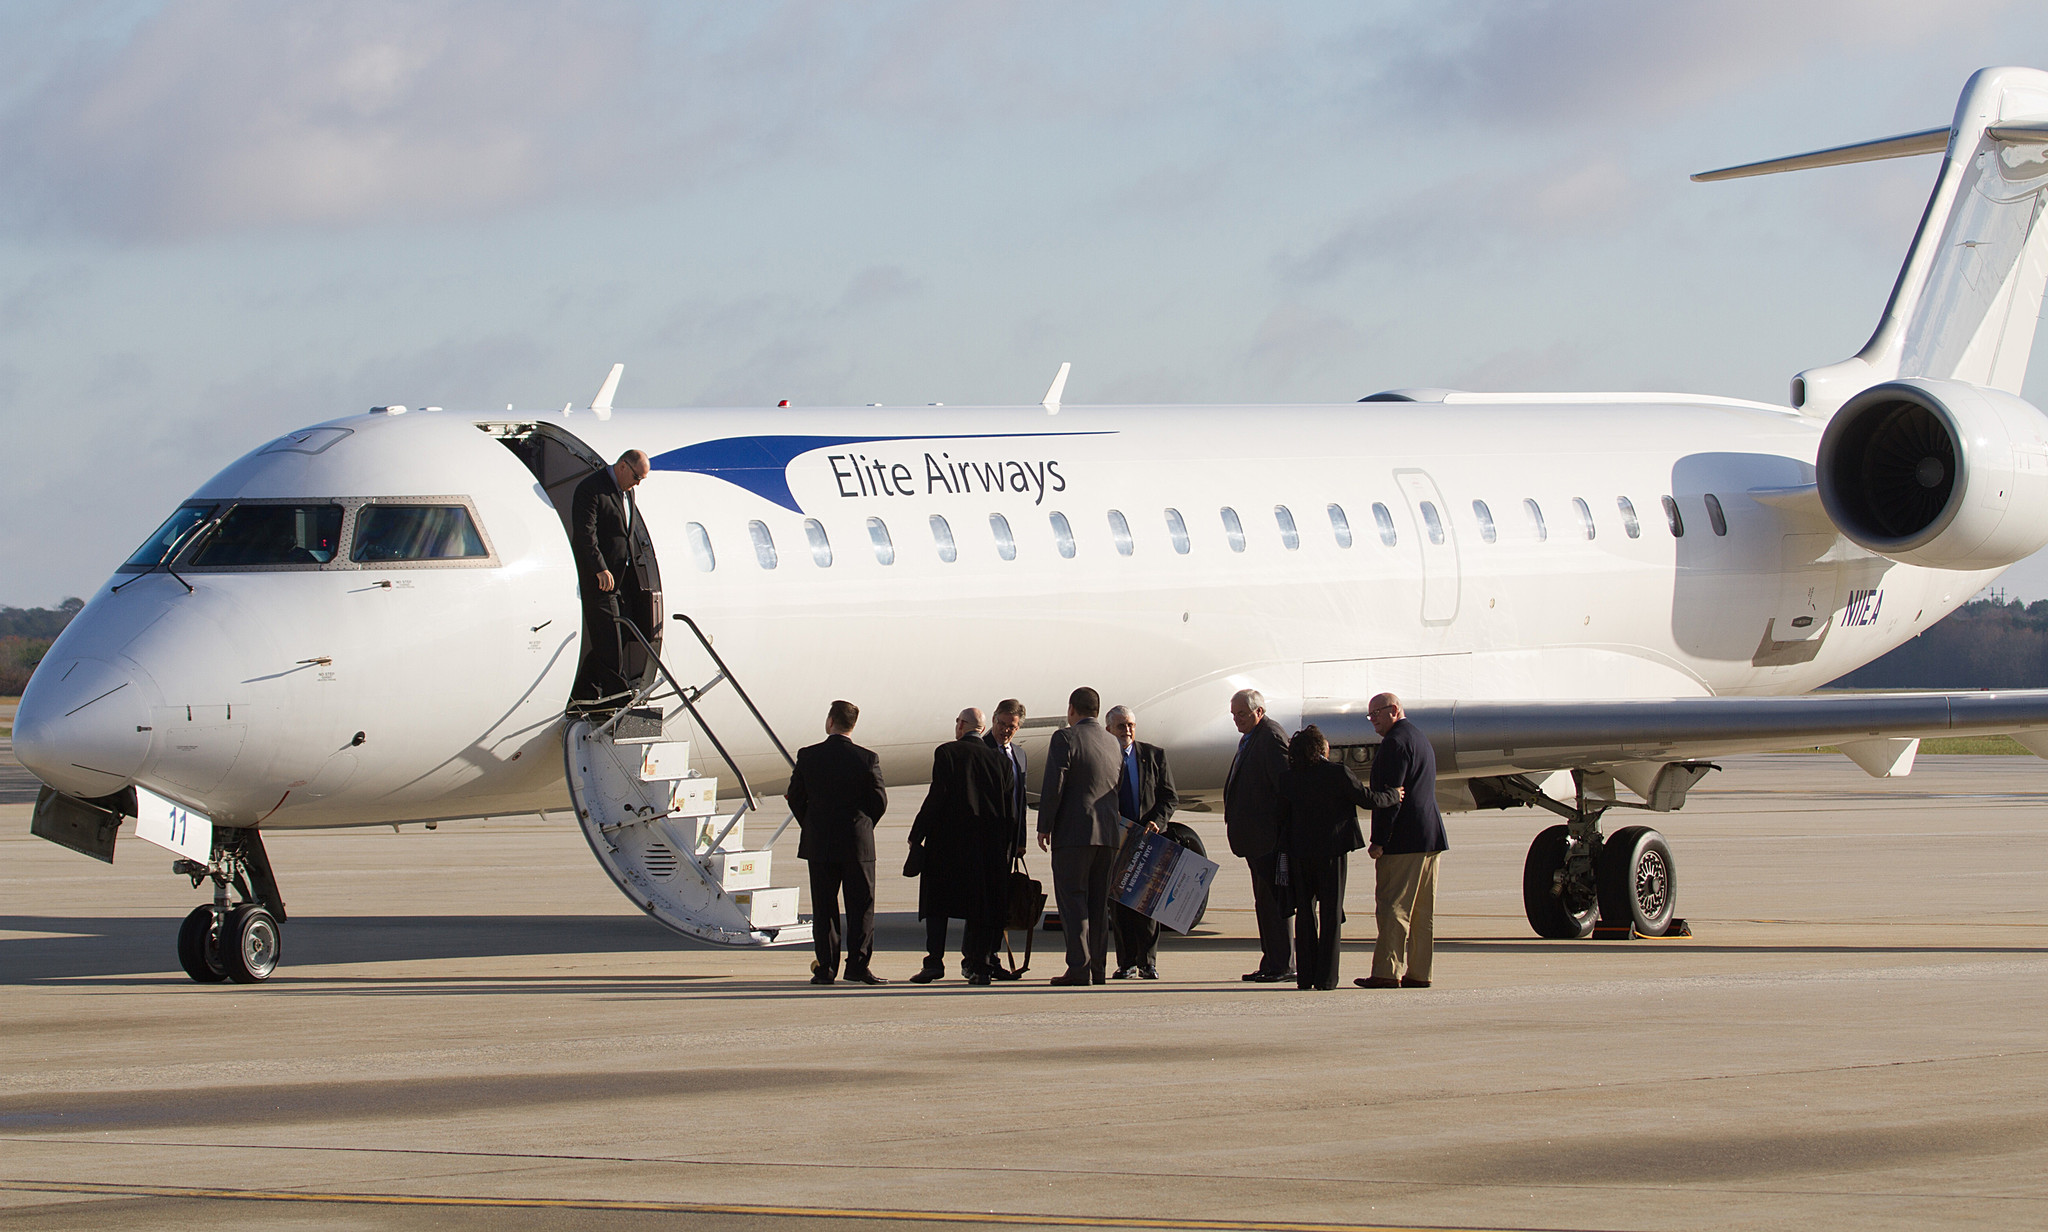 Elite Airways to offer nonstop service from Newport News